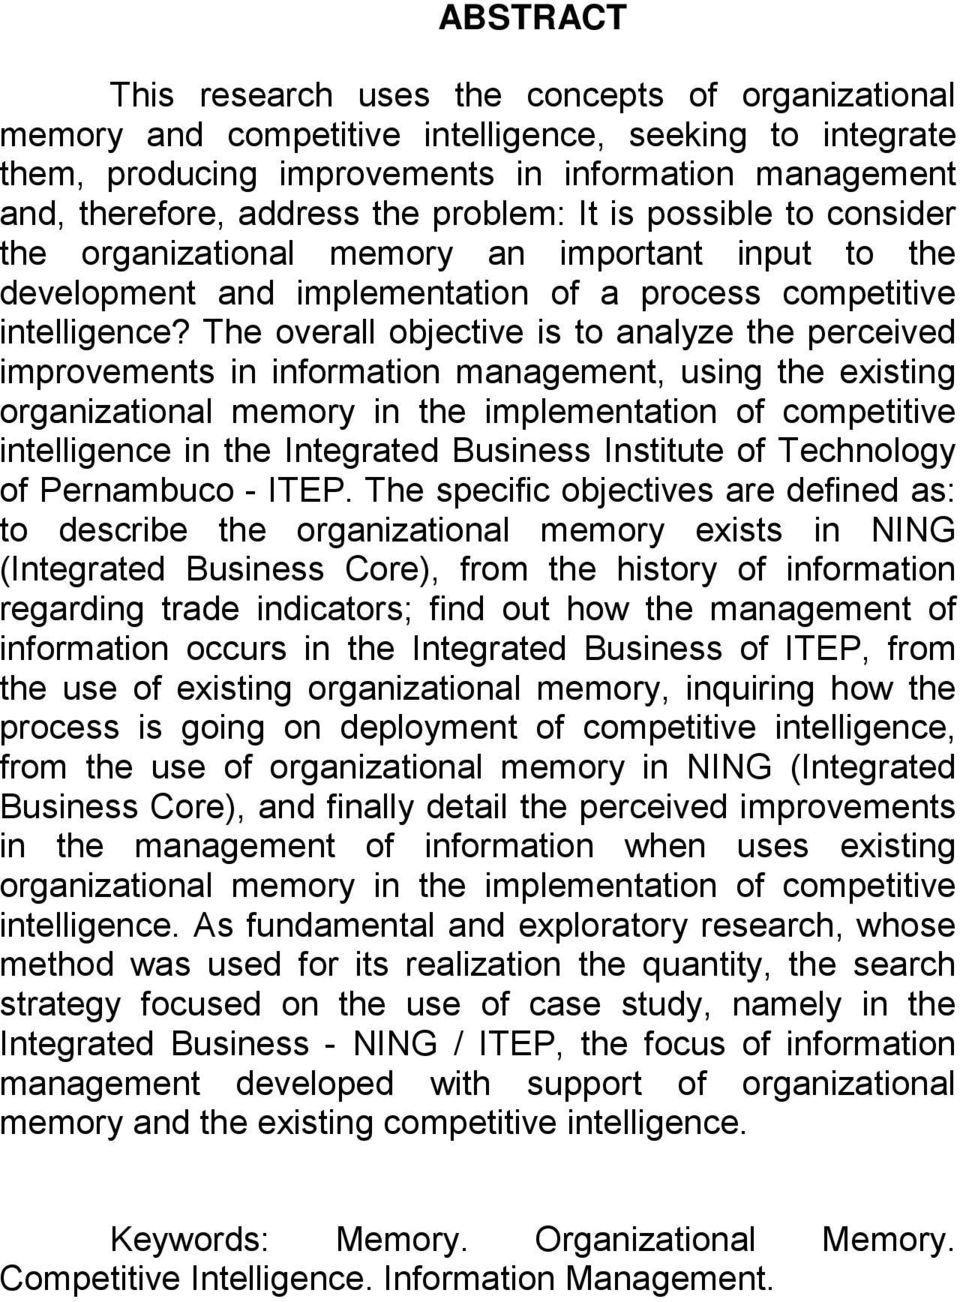 The overall objective is to analyze the perceived improvements in information management, using the existing organizational memory in the implementation of competitive intelligence in the Integrated